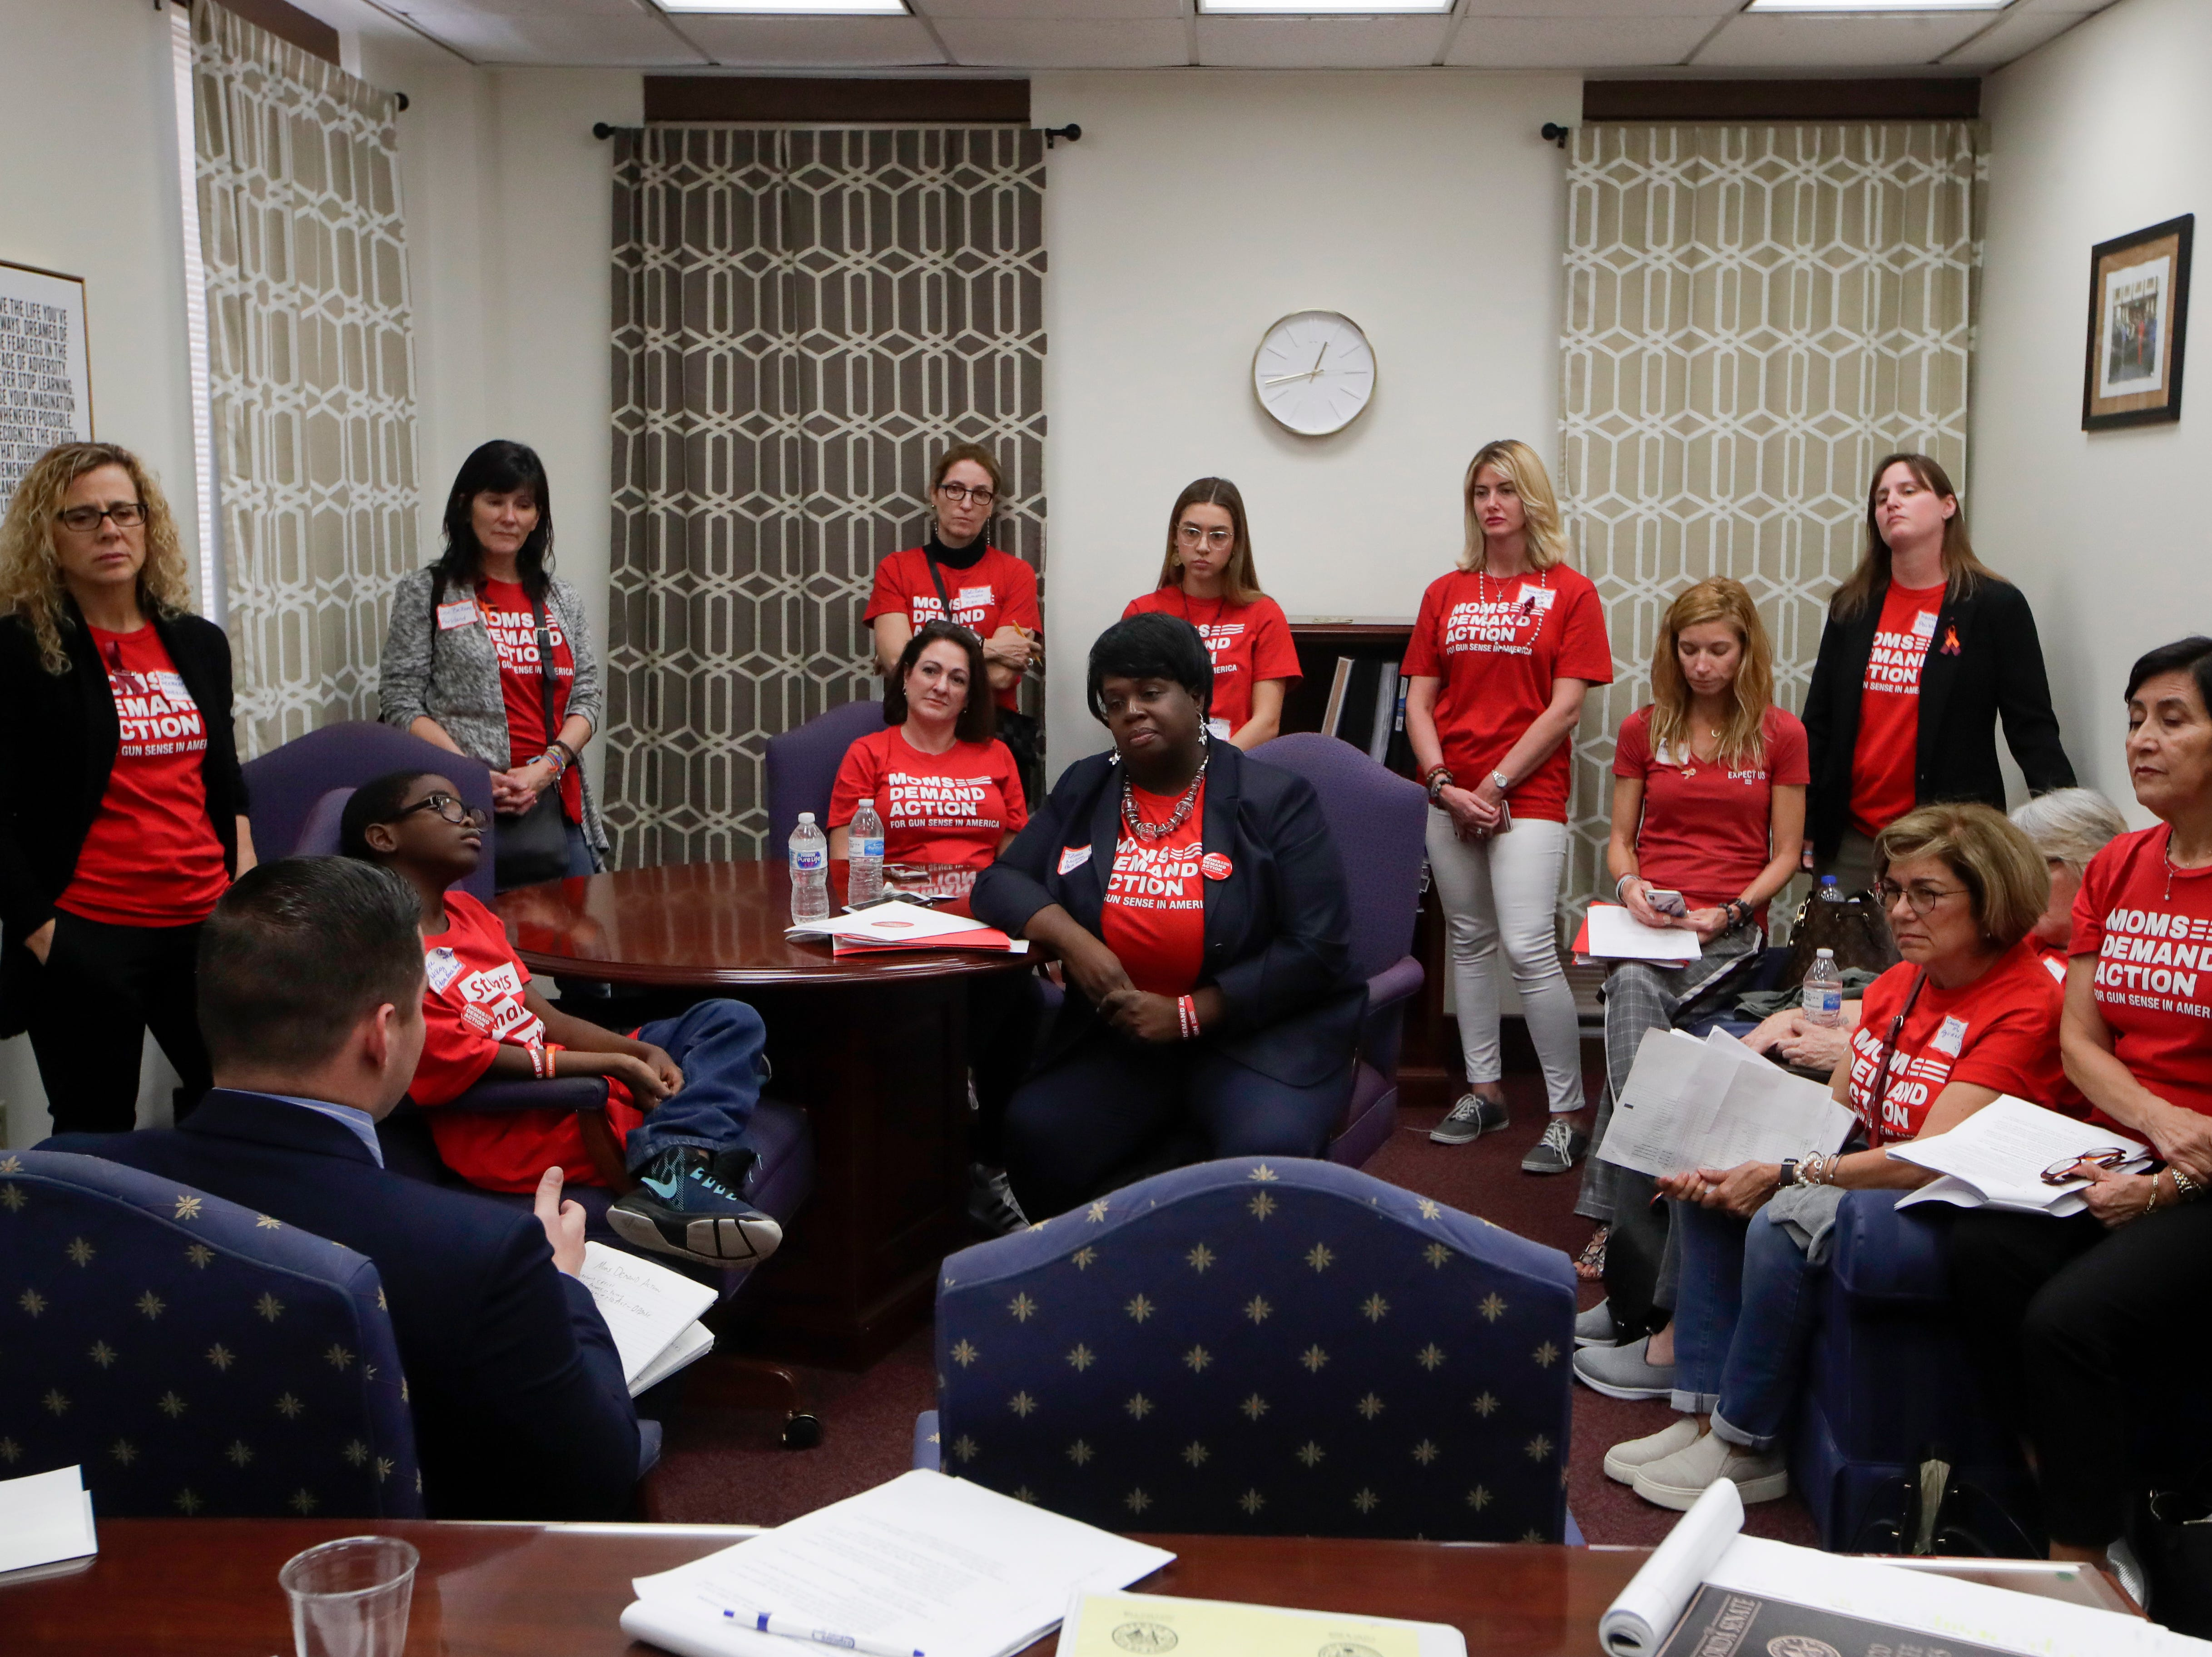 Members of Moms Demand Actions from Broward and Palm Beach counties meet with Tomas Alcala, a legislative assistant to Sen. Bobby Powell to lobby for stricter gun laws in Florida Wednesday, Feb. 6, 2019.